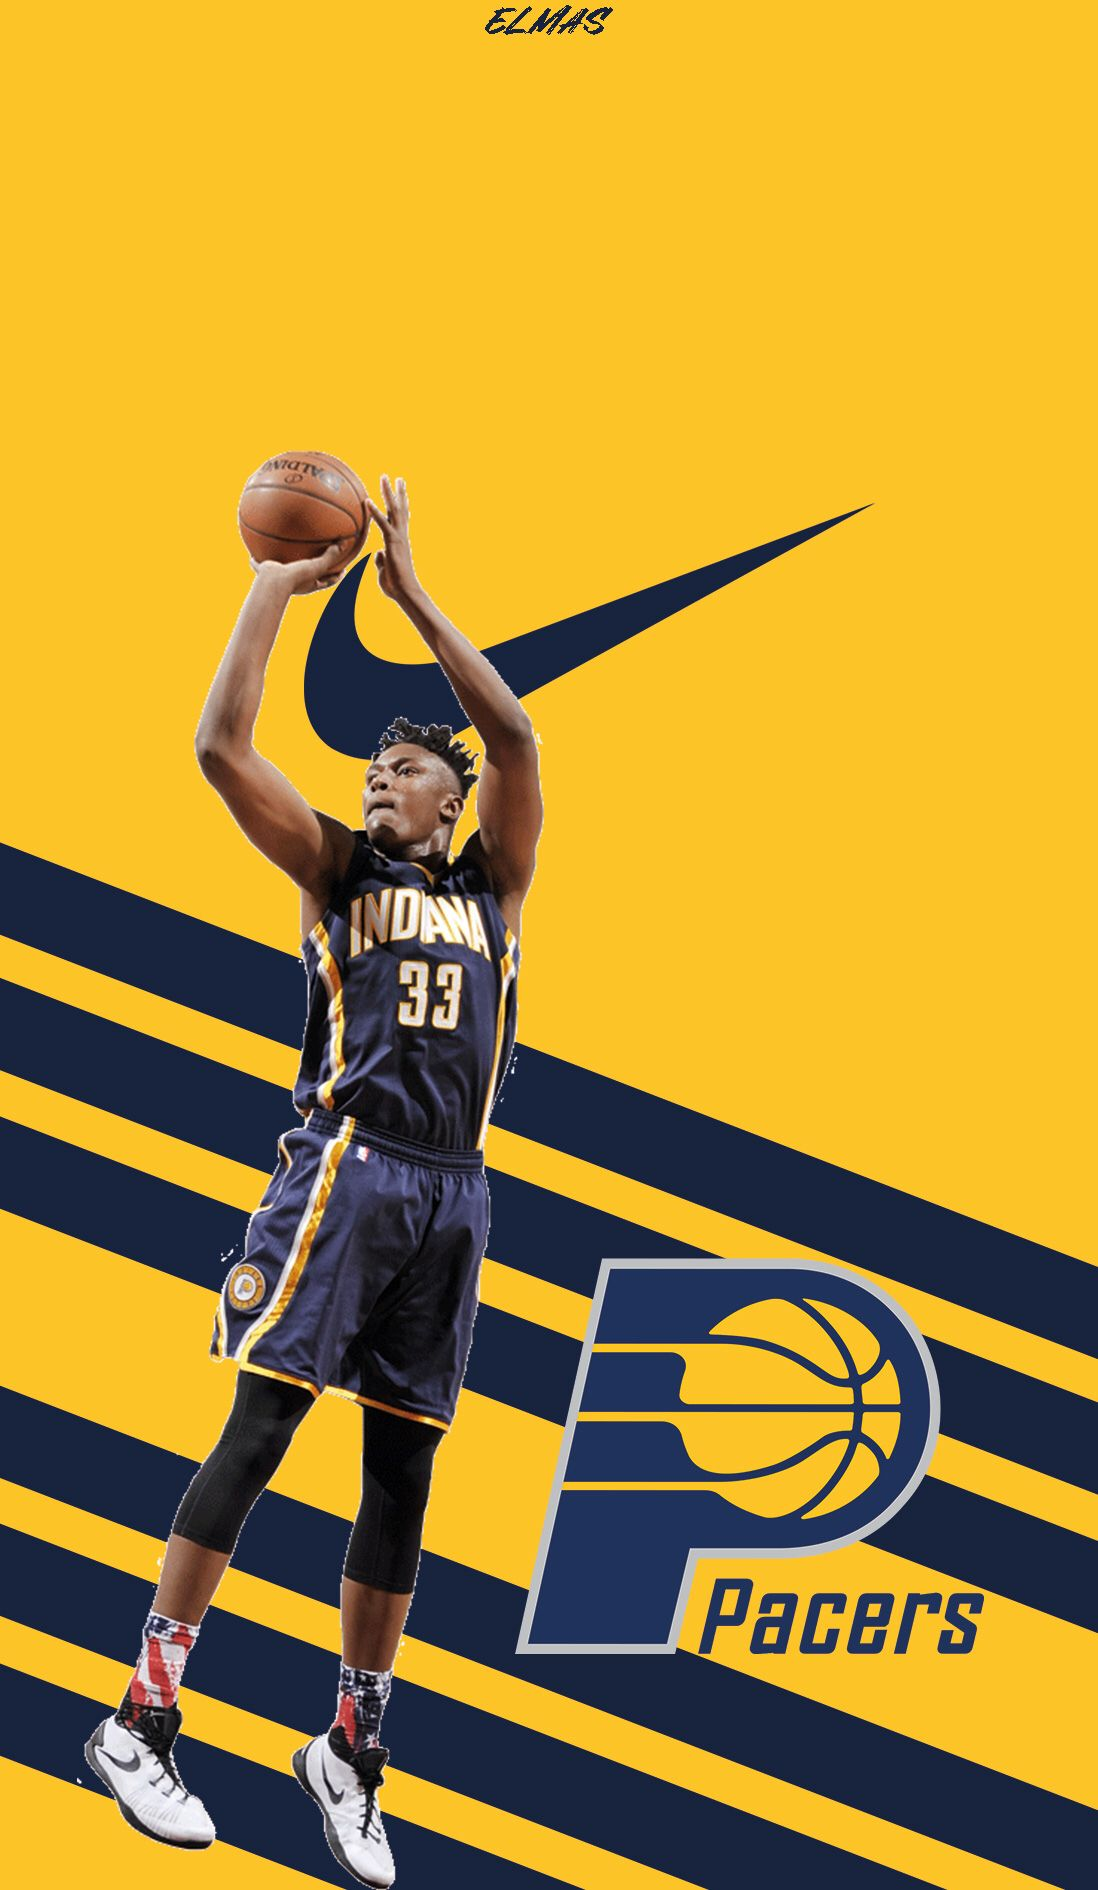 Pacers Indiana Pacers Kobe Bryant Nba Nba League